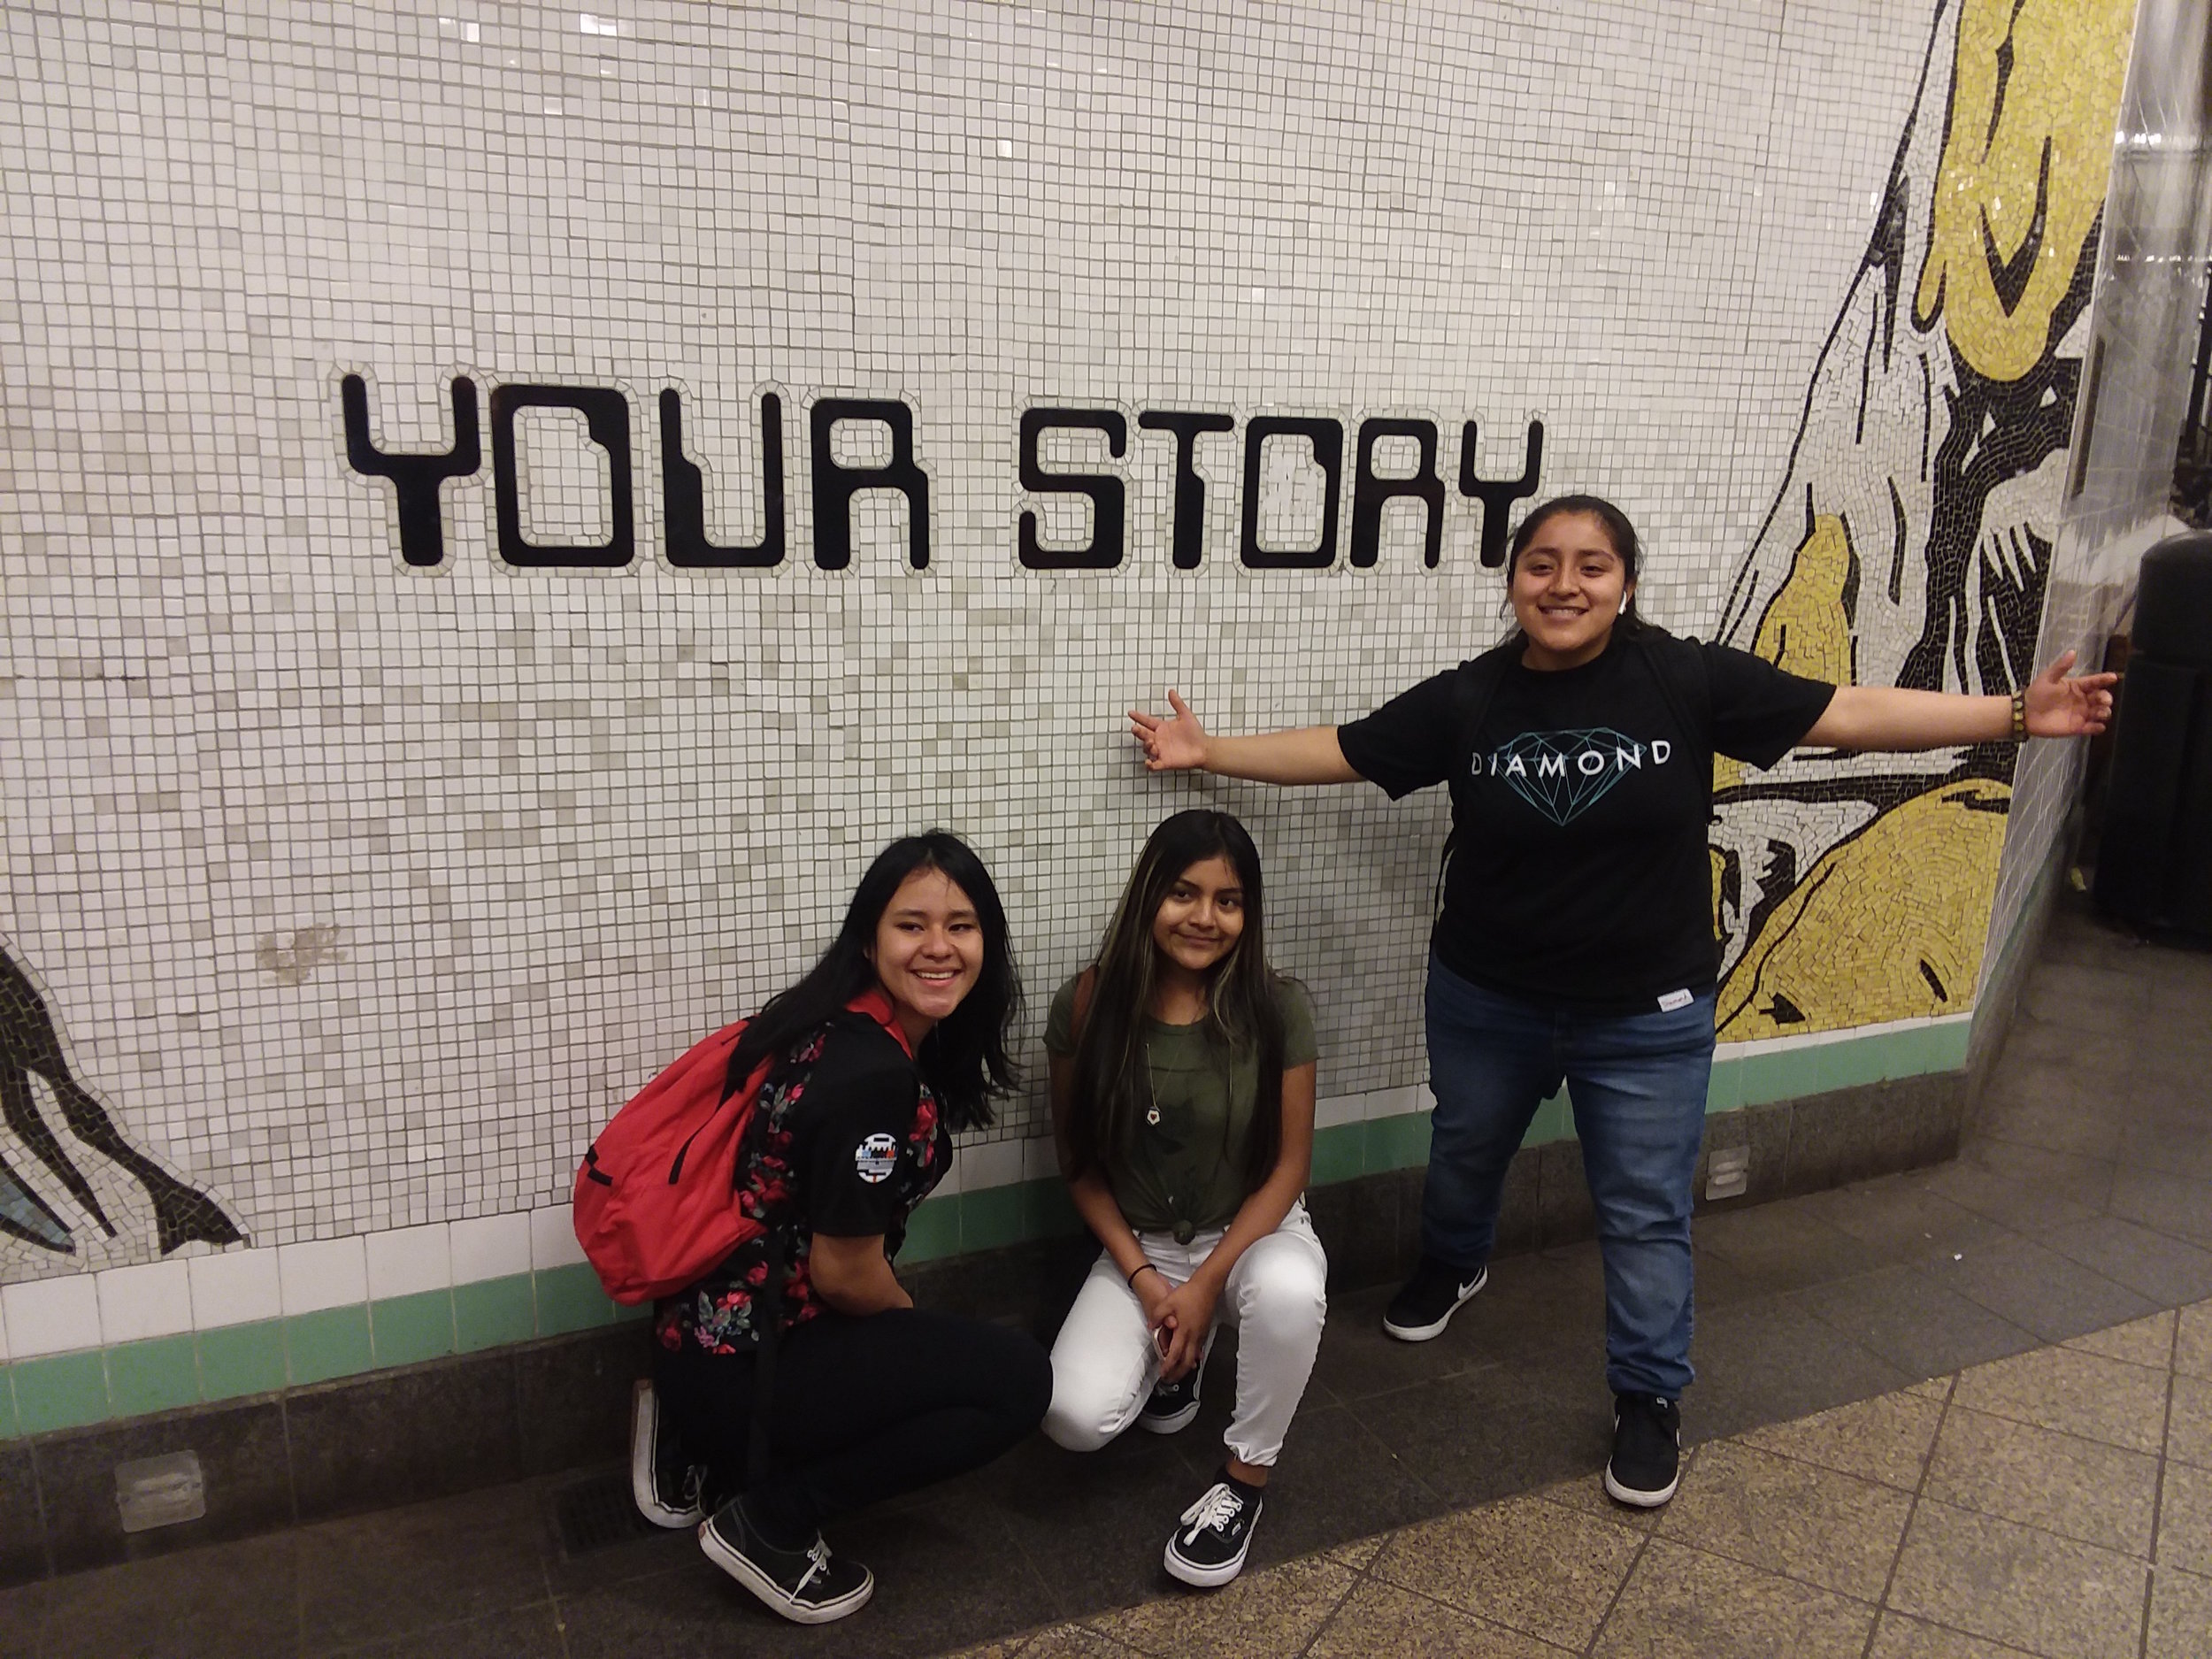 Students in the subway